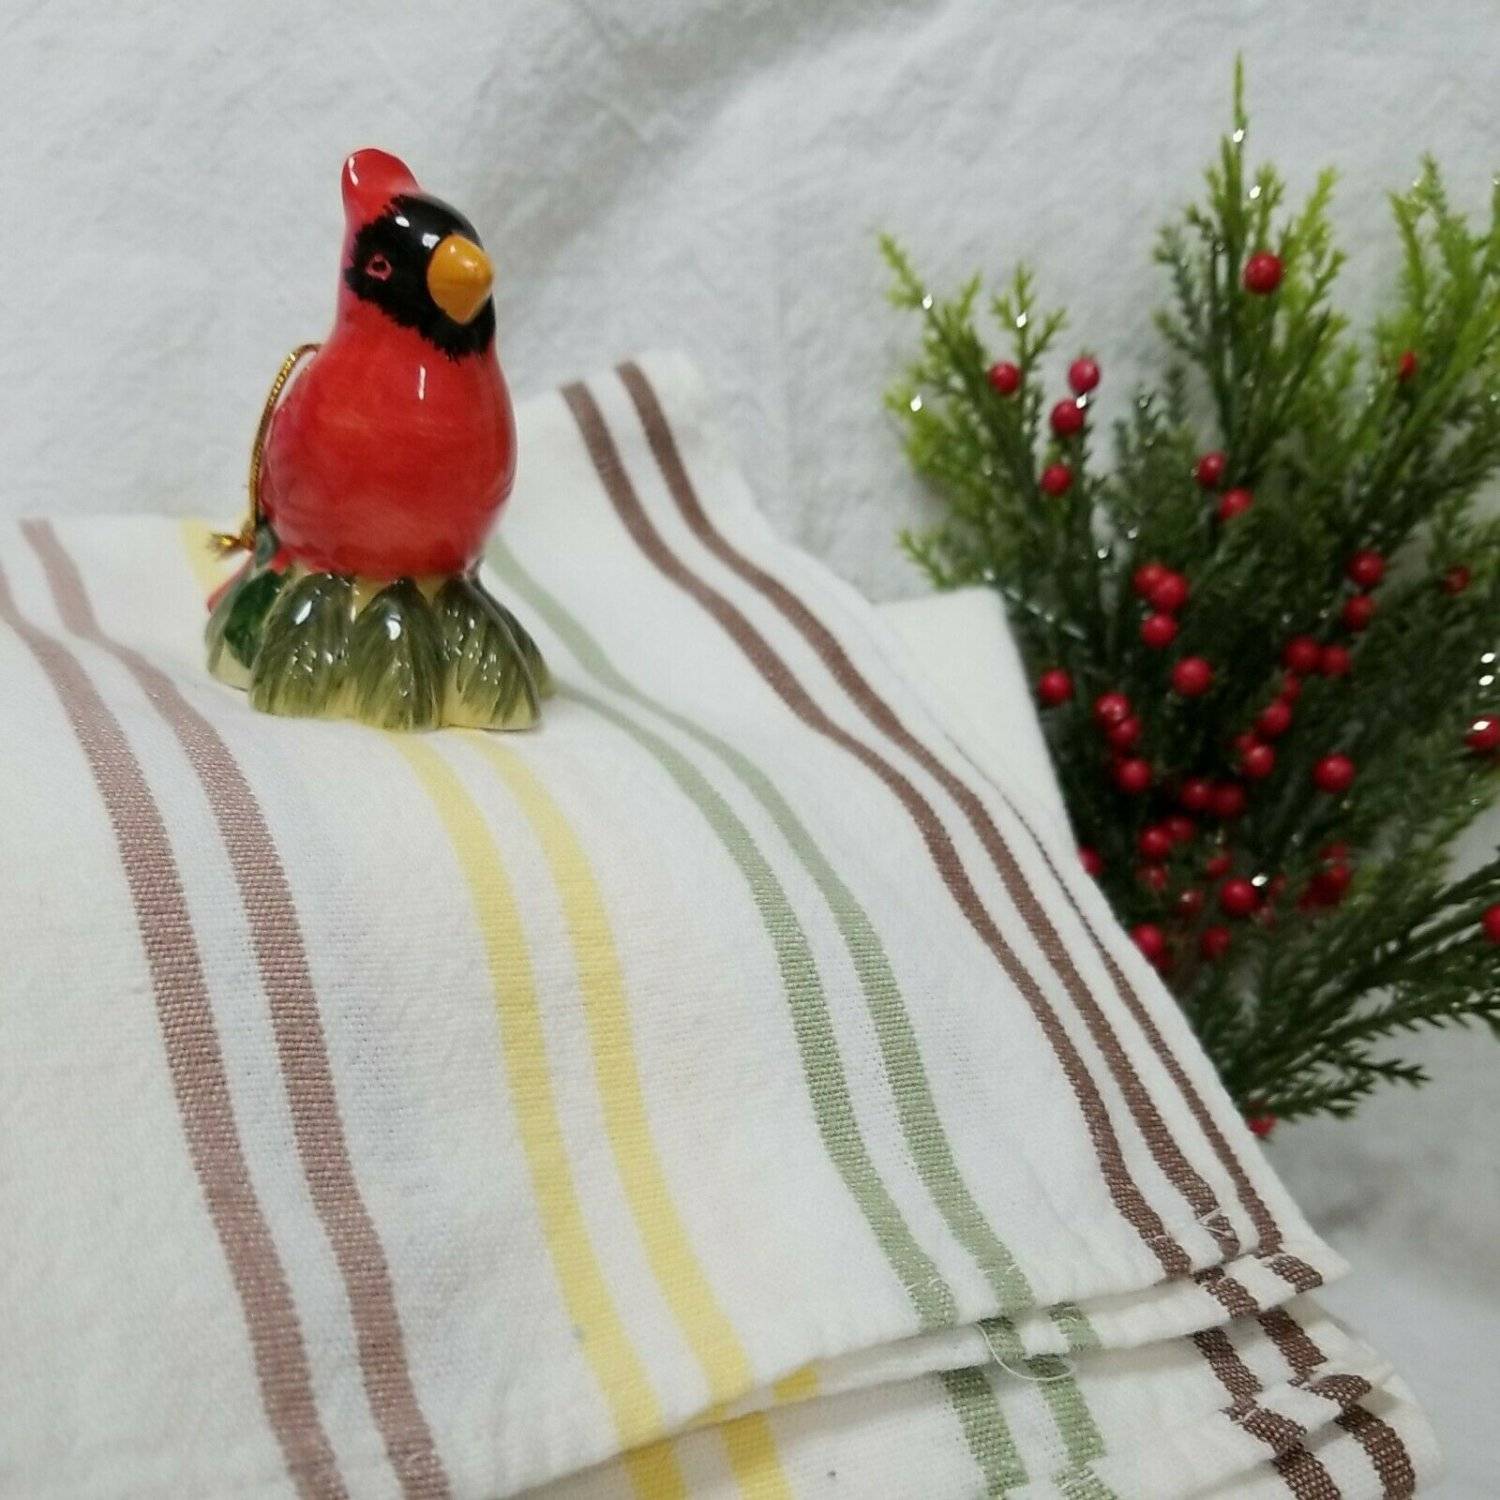 Fabulous Large Cotton/Linen Towel with Tan, Yellow, Green and Brown Stripes